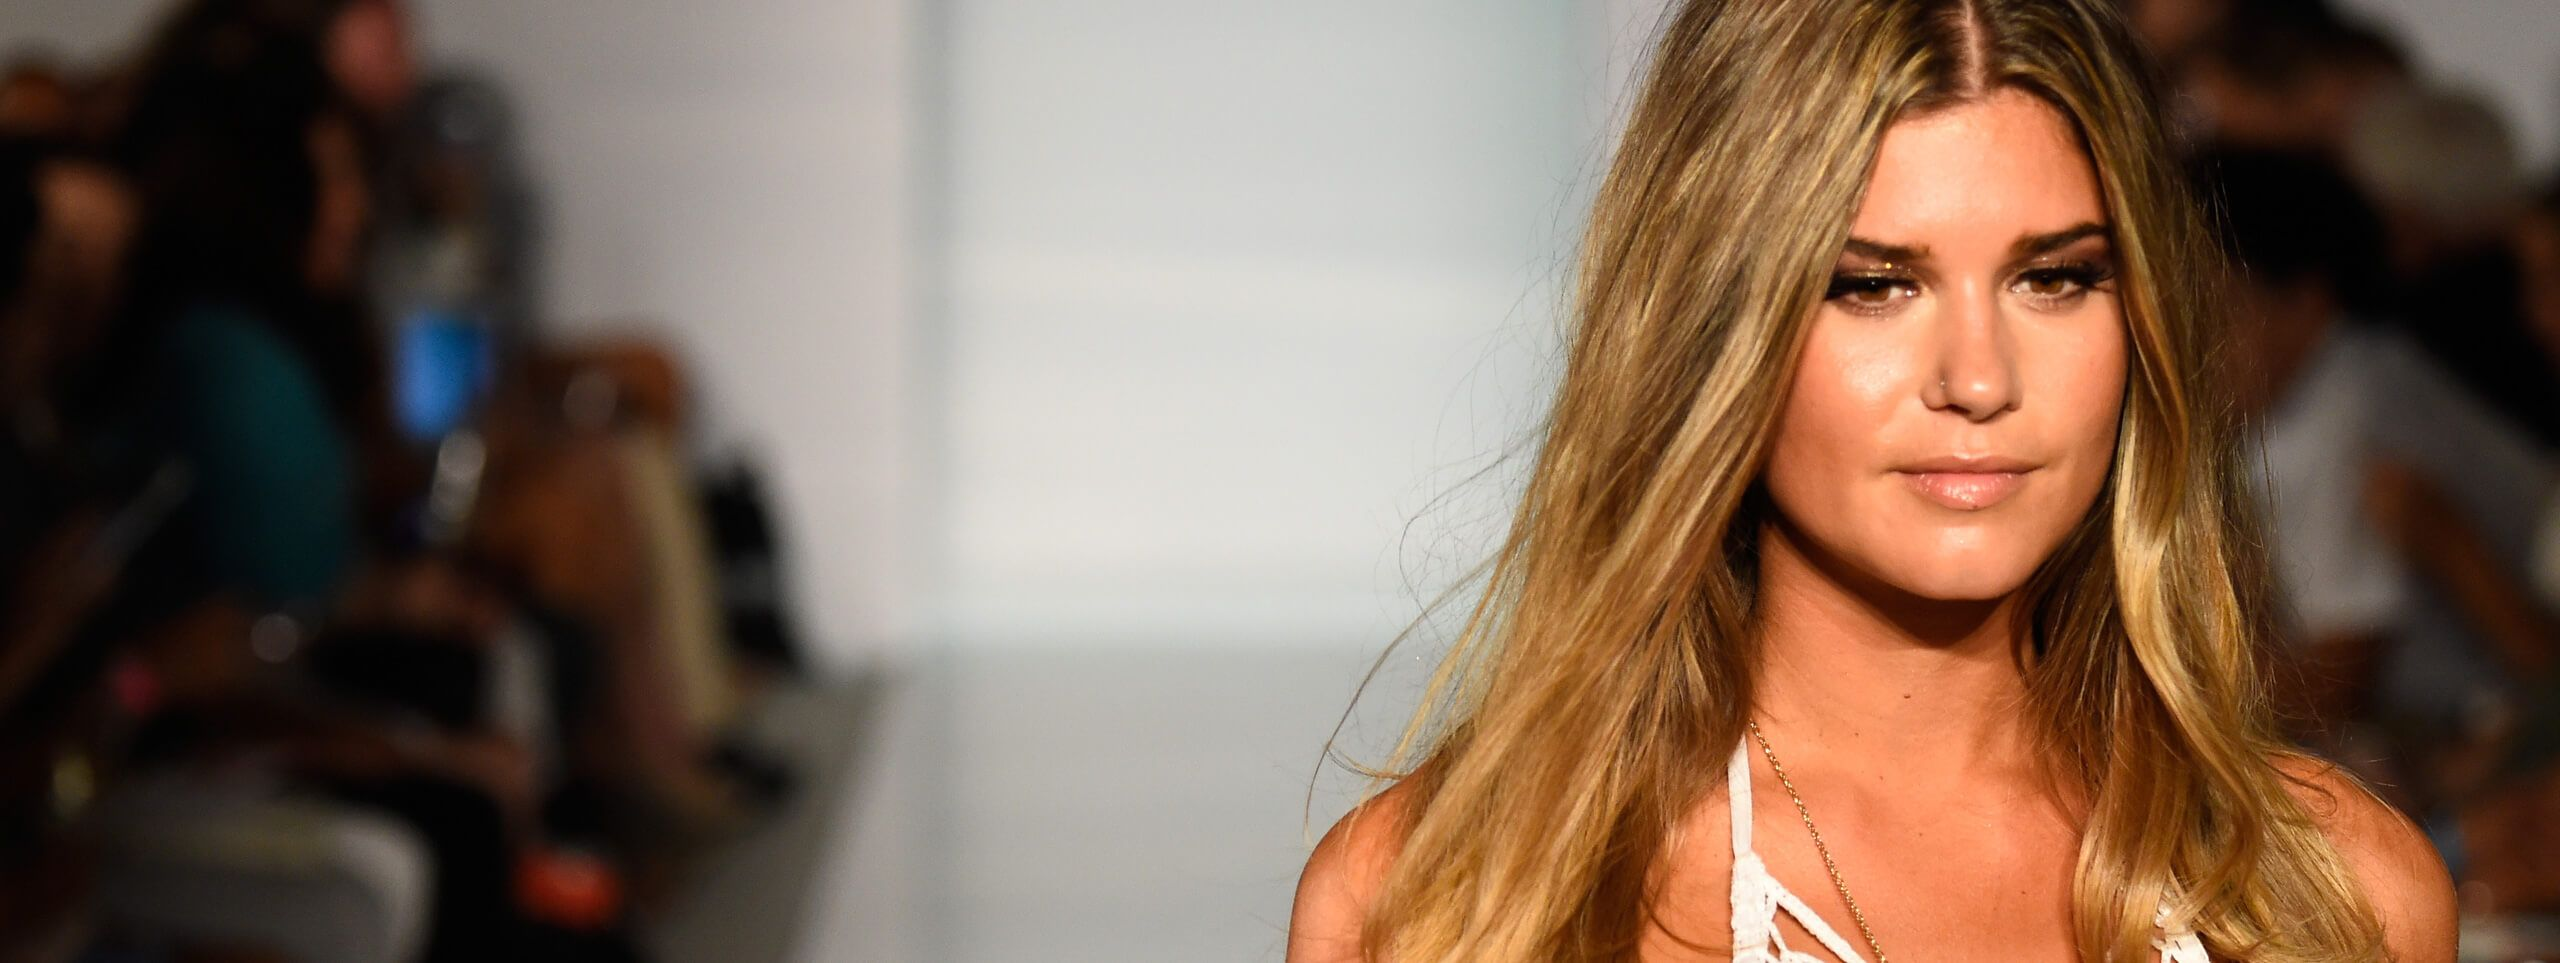 Model with bronde hairstyle